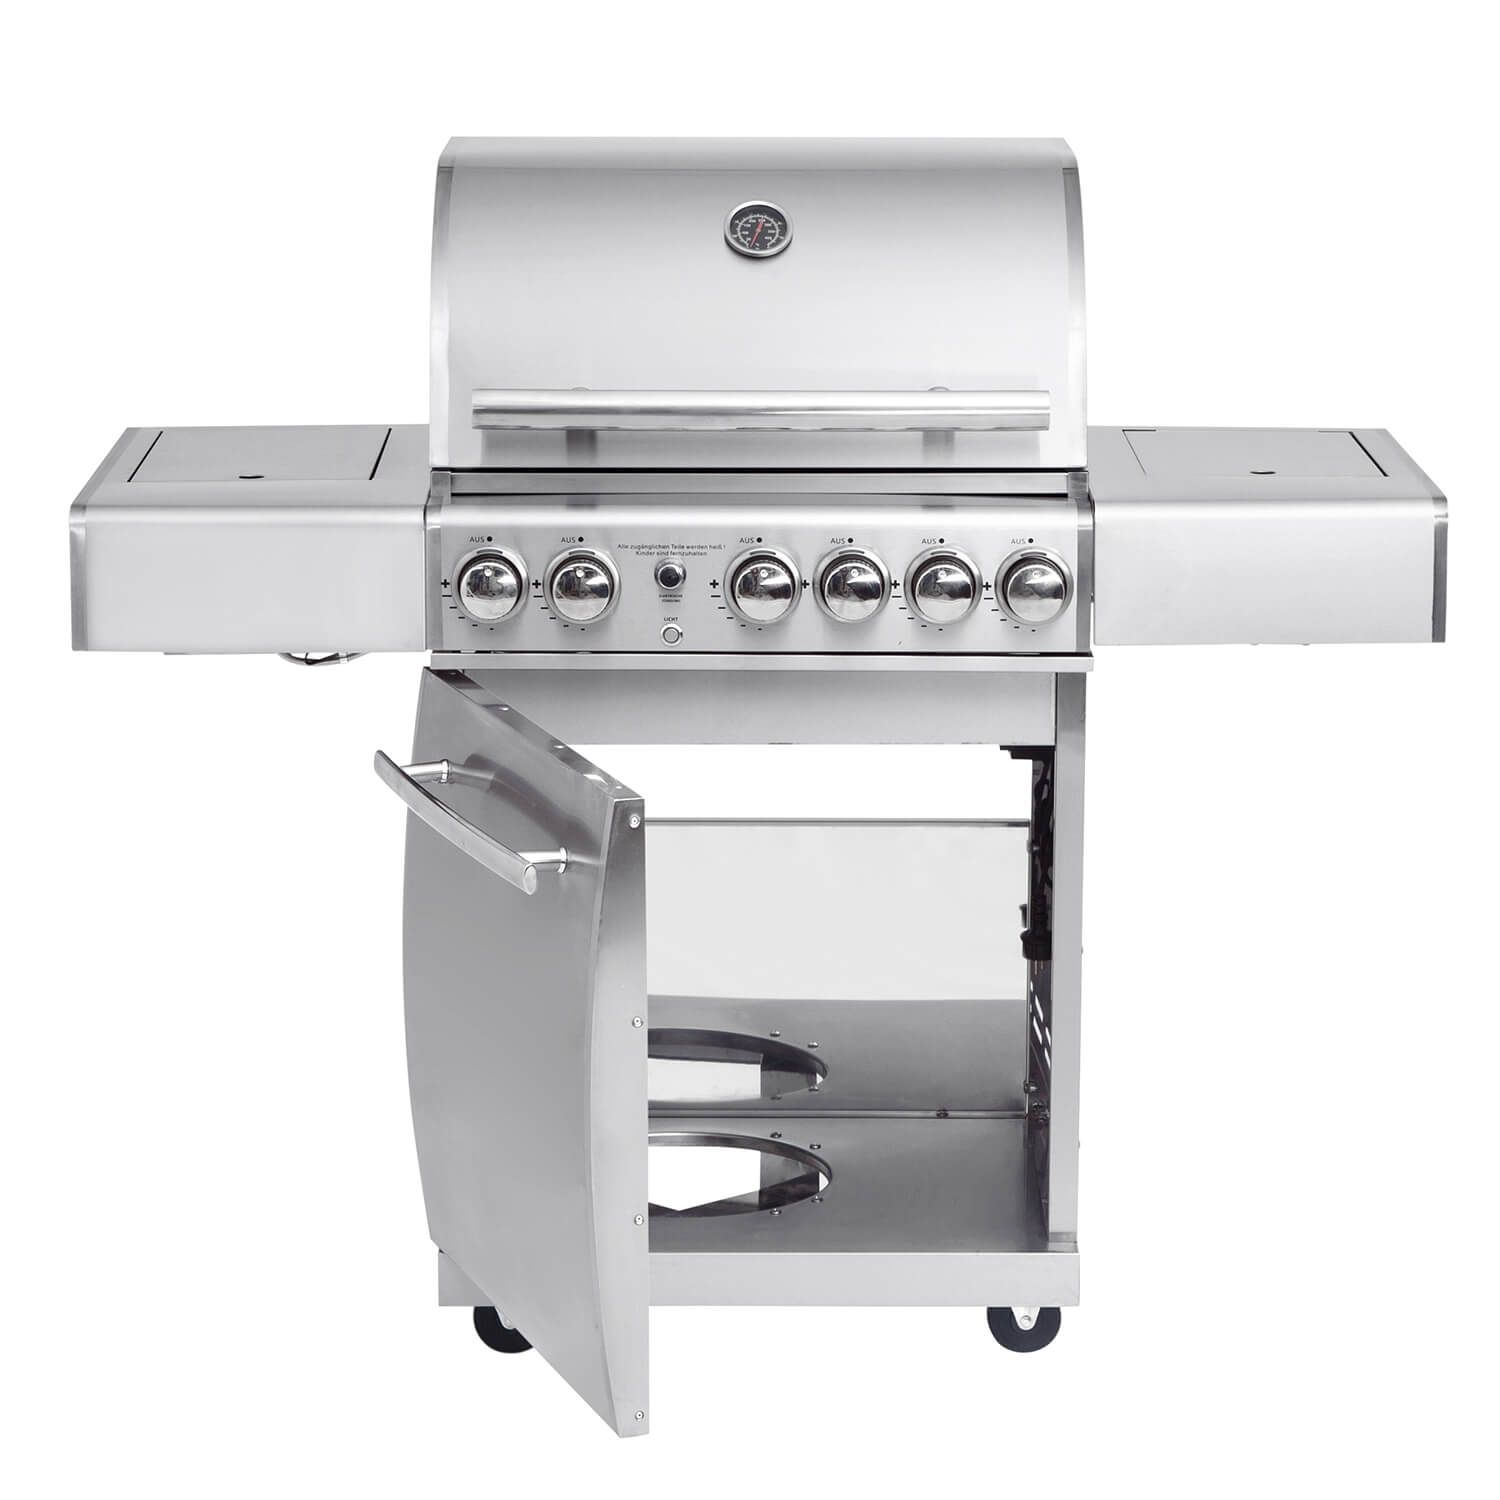 Top Line All Grill Chef M Mit Air System Volledelstahl Gas Grill Mit All Grill Air System Gesamtleistung 21 2 Kw 3 Edelstahl Grill Gasgrill Grillen